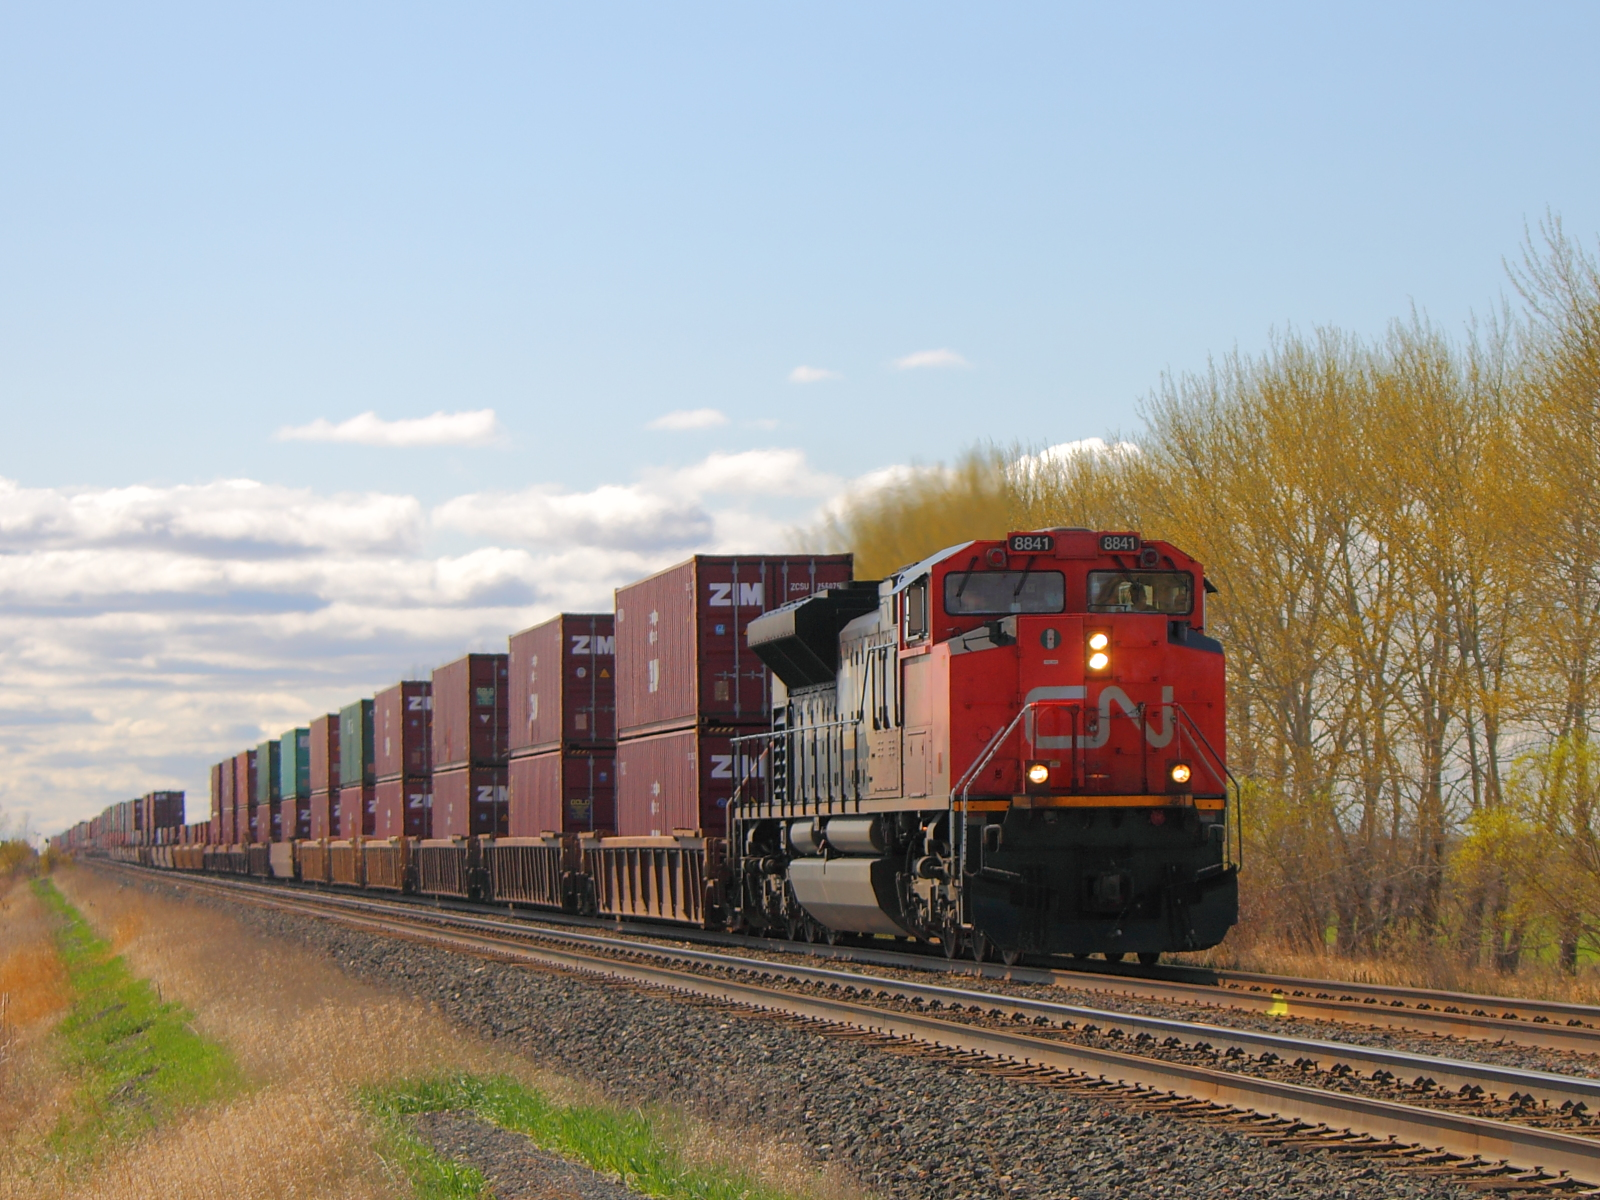 CN 8841 in Winnipeg, MB 2012/05/03